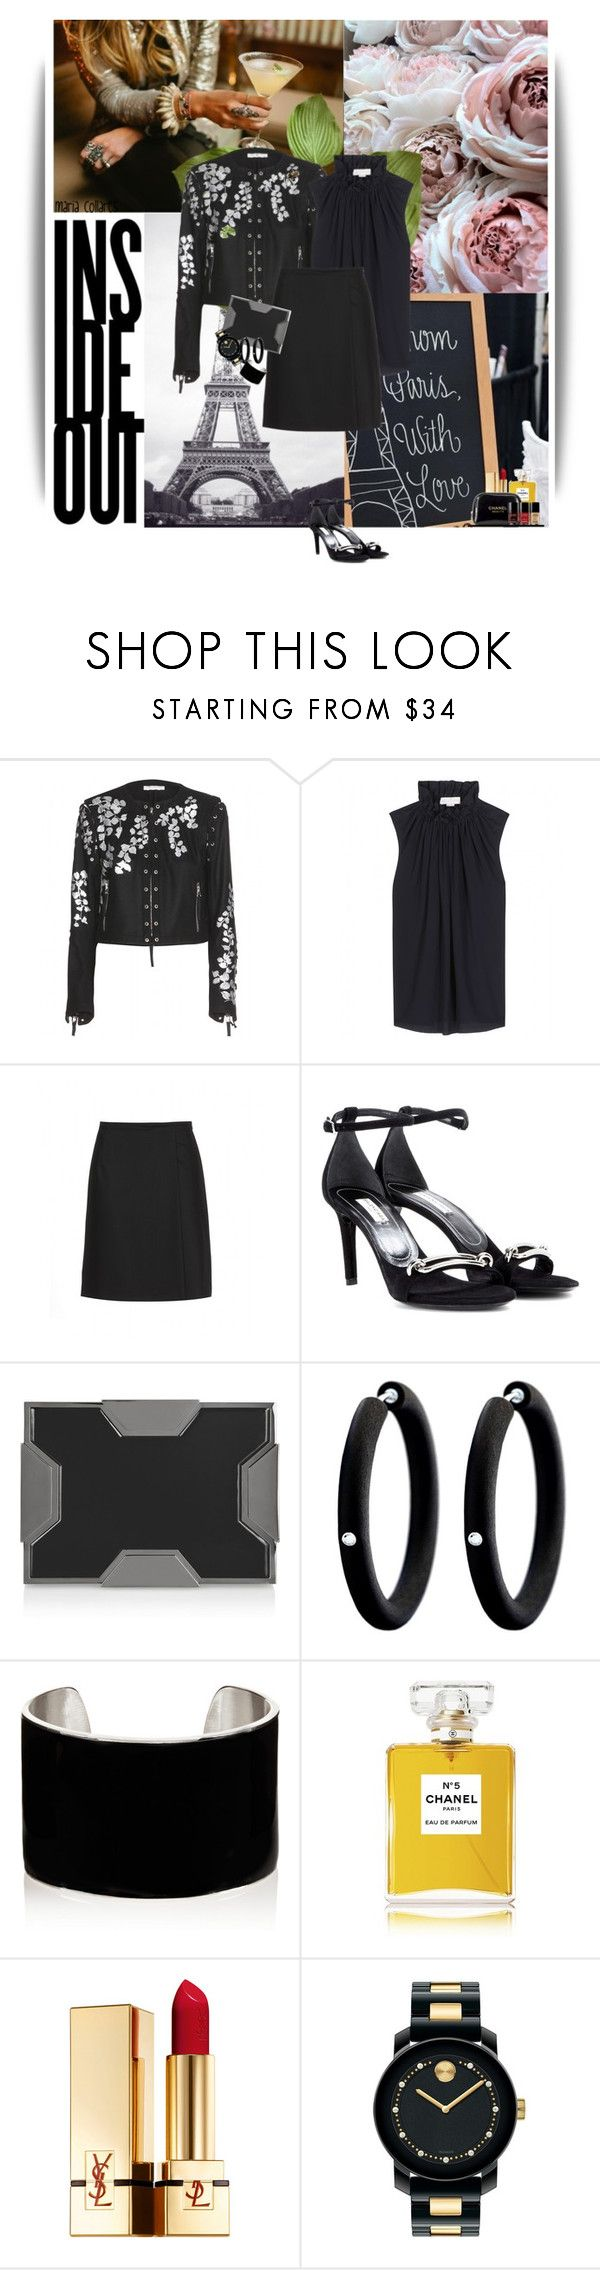 """Back in Black"" by mariacollares ❤ liked on Polyvore featuring Dries Van Noten, STELLA McCARTNEY, Chloé, Balenciaga, Lee Savage, André Ribeiro, IaM by Ileana Makri, Chanel, Yves Saint Laurent and Movado"